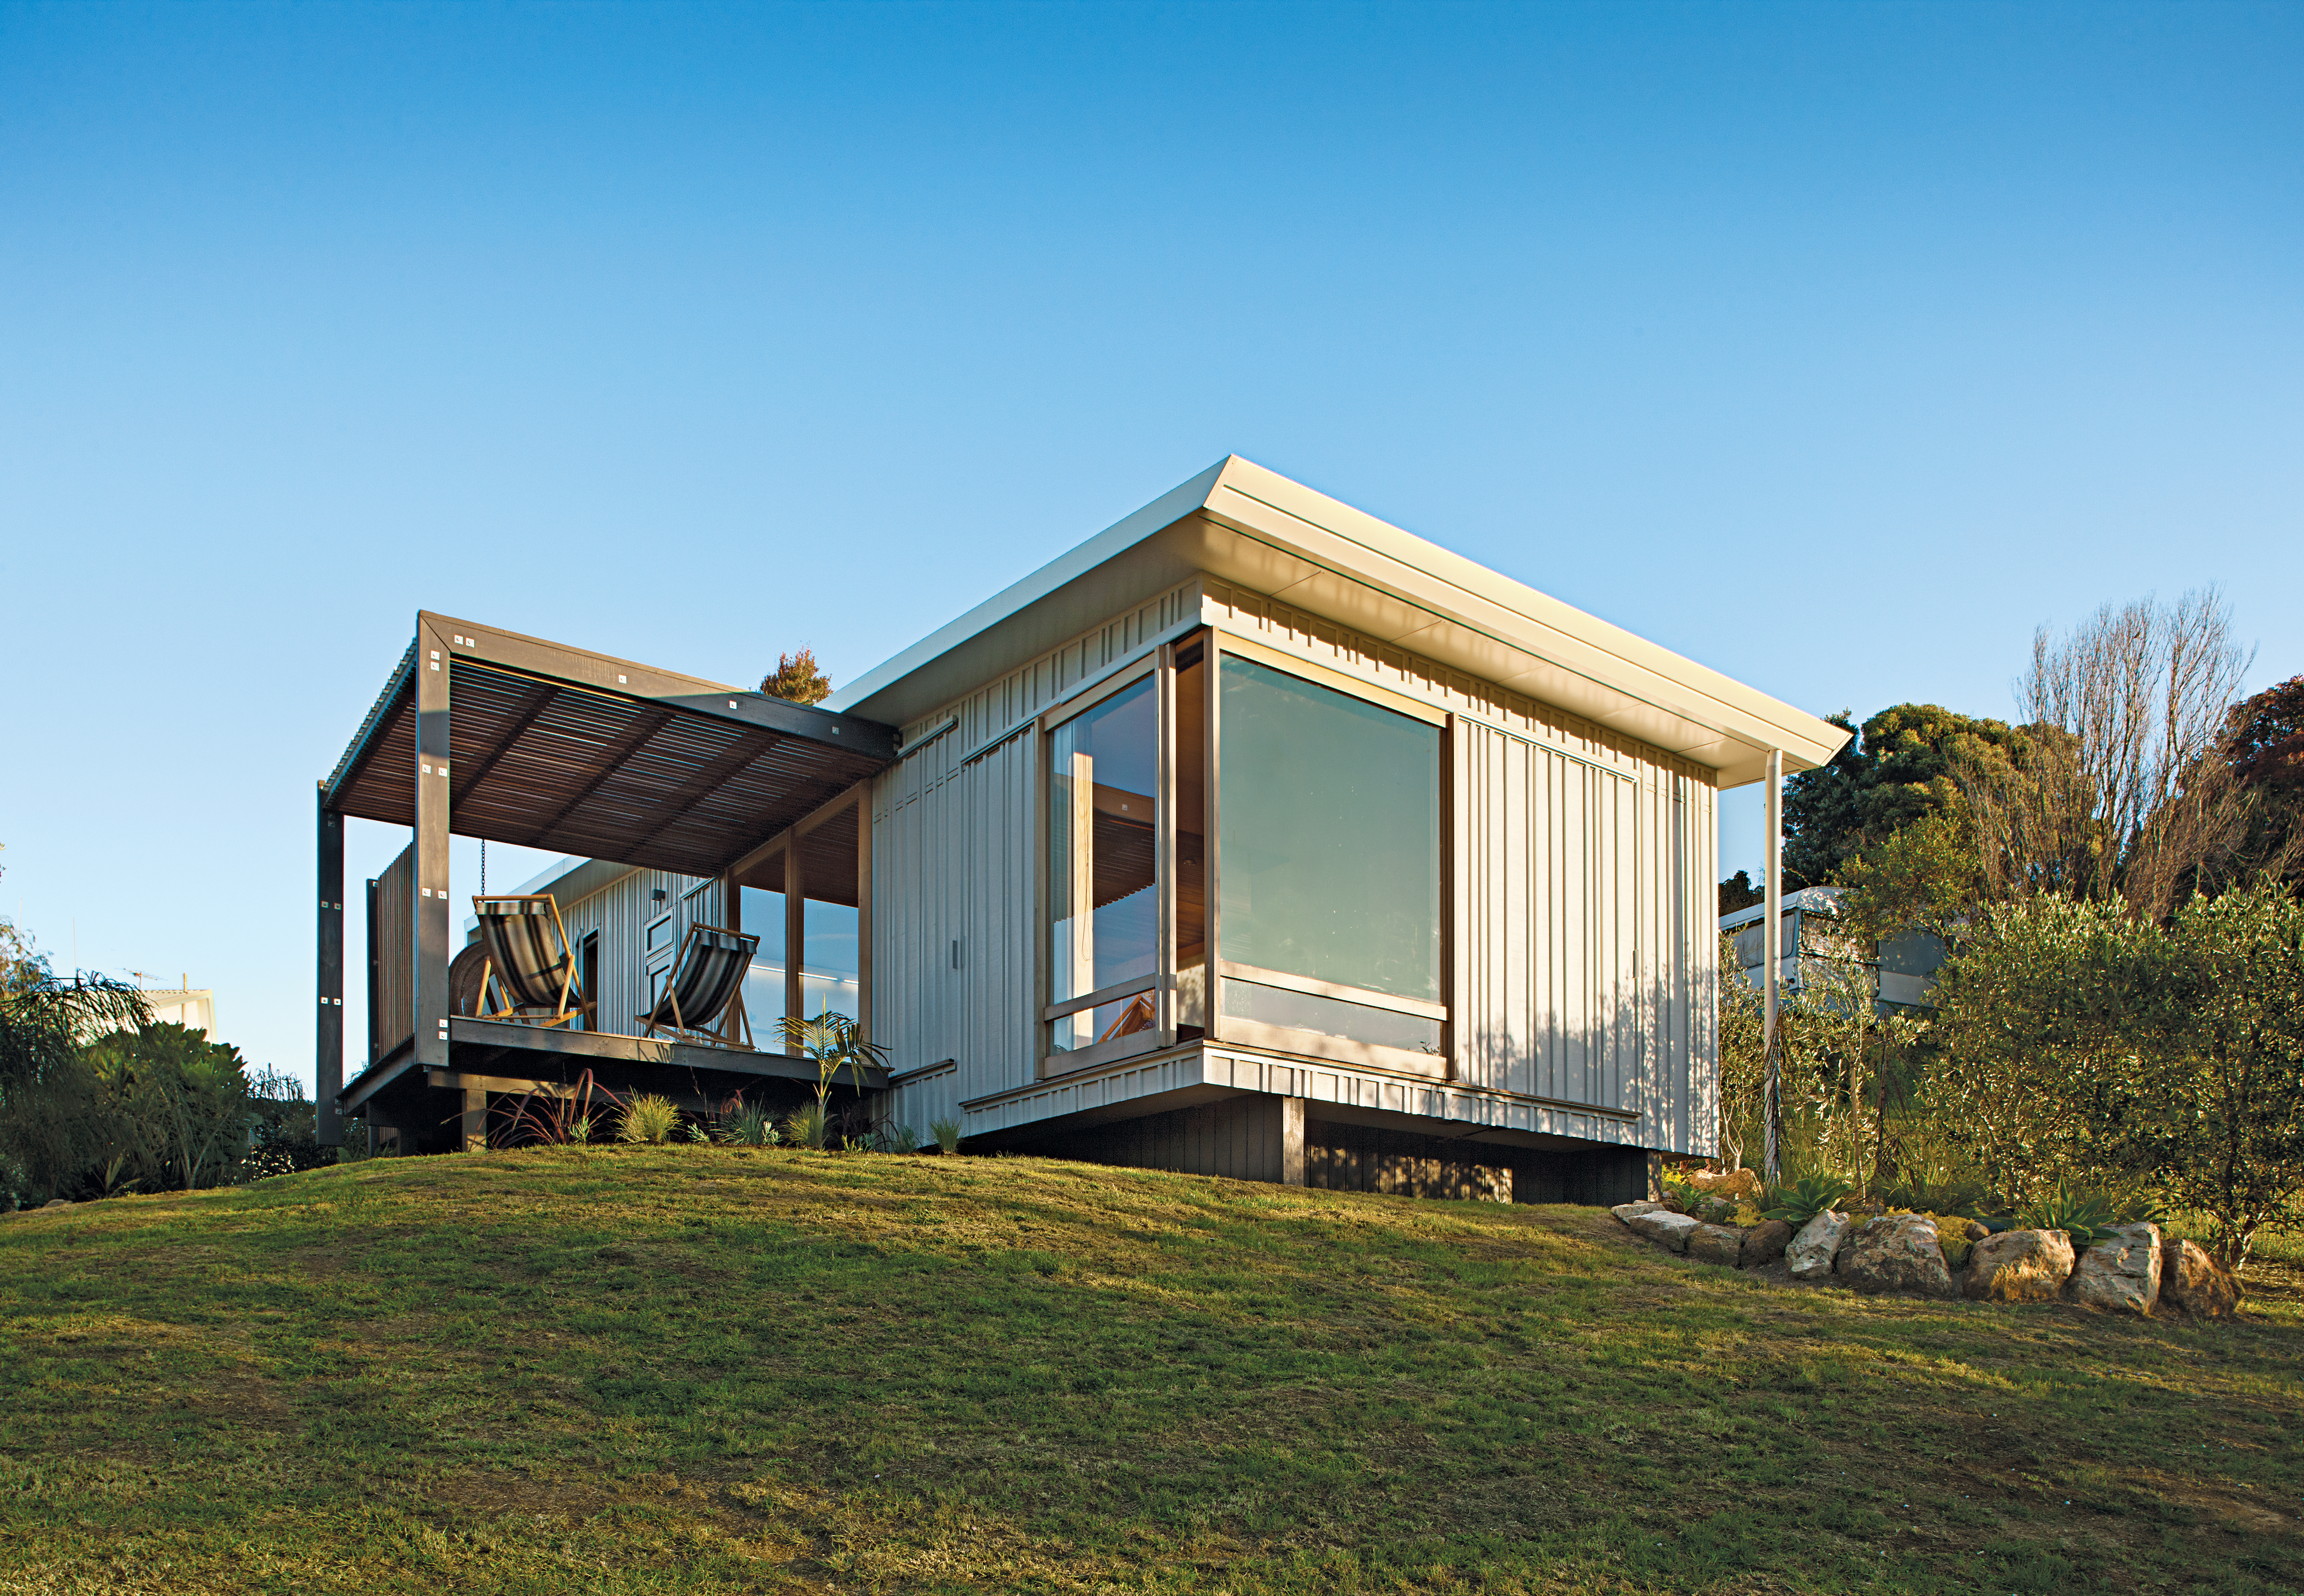 Students Pass Their Class by Building a House in New Zealand   Dwell